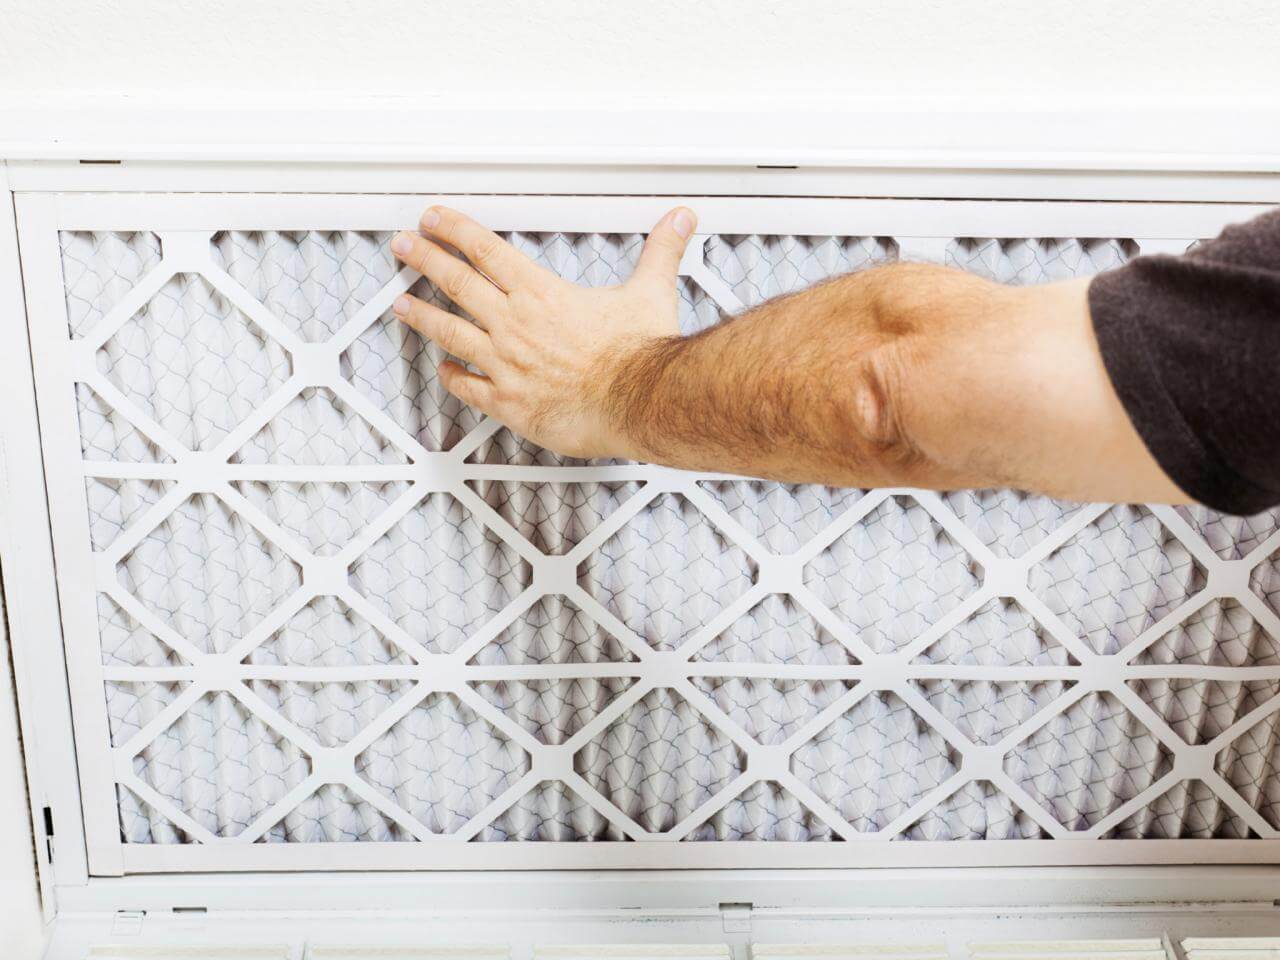 HVAC filters can be replaced monthly for maximum efficiency.